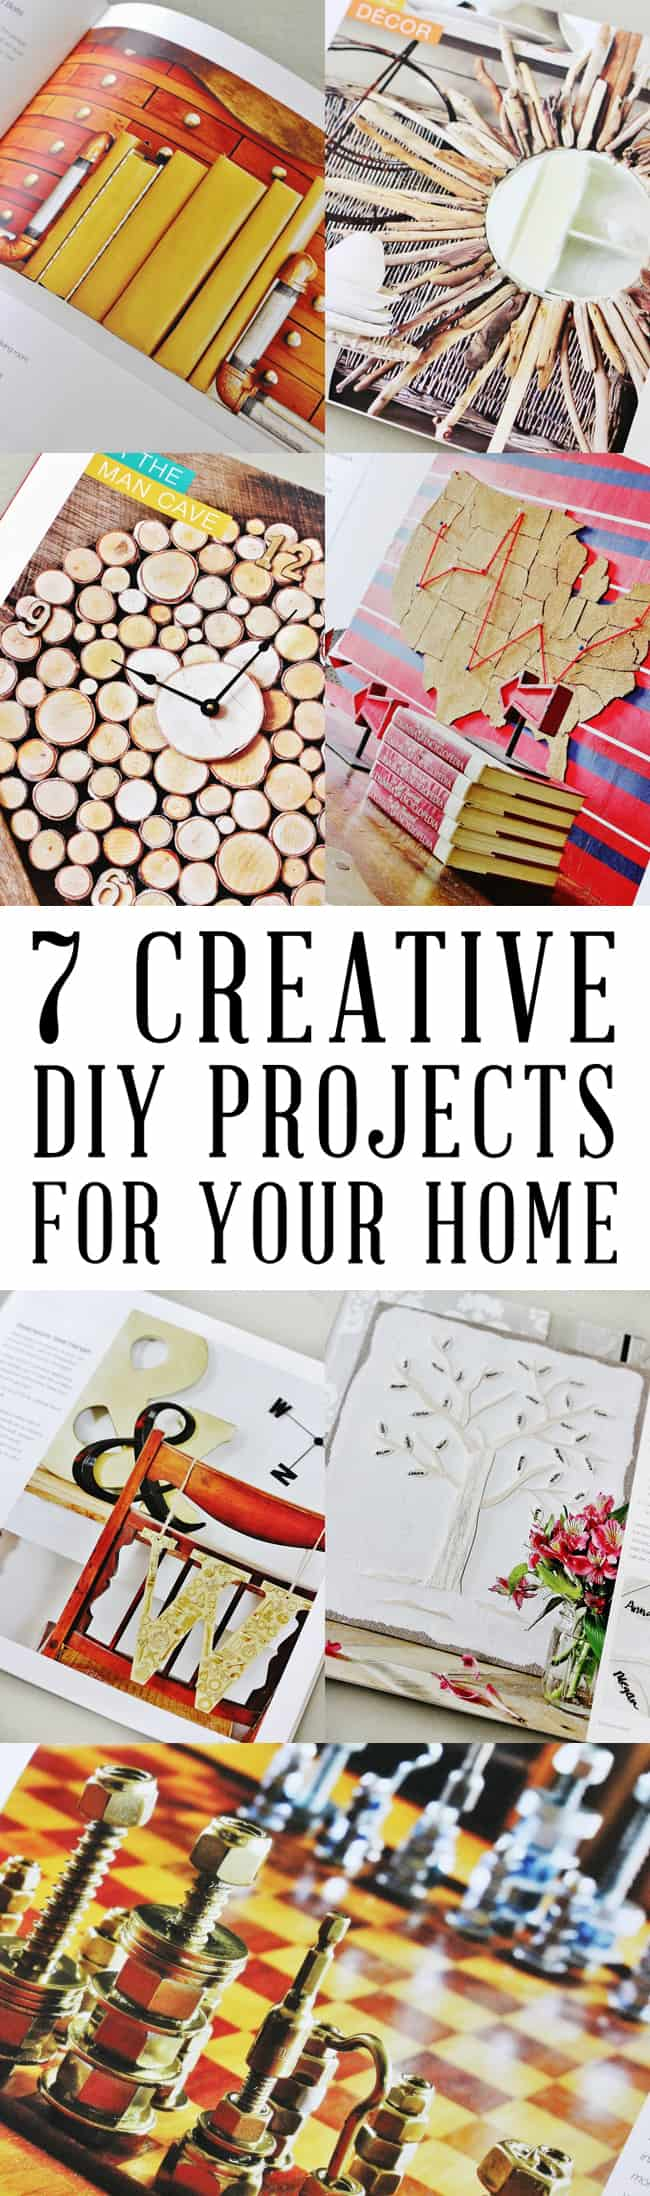 7CREATIVEPROJECTS